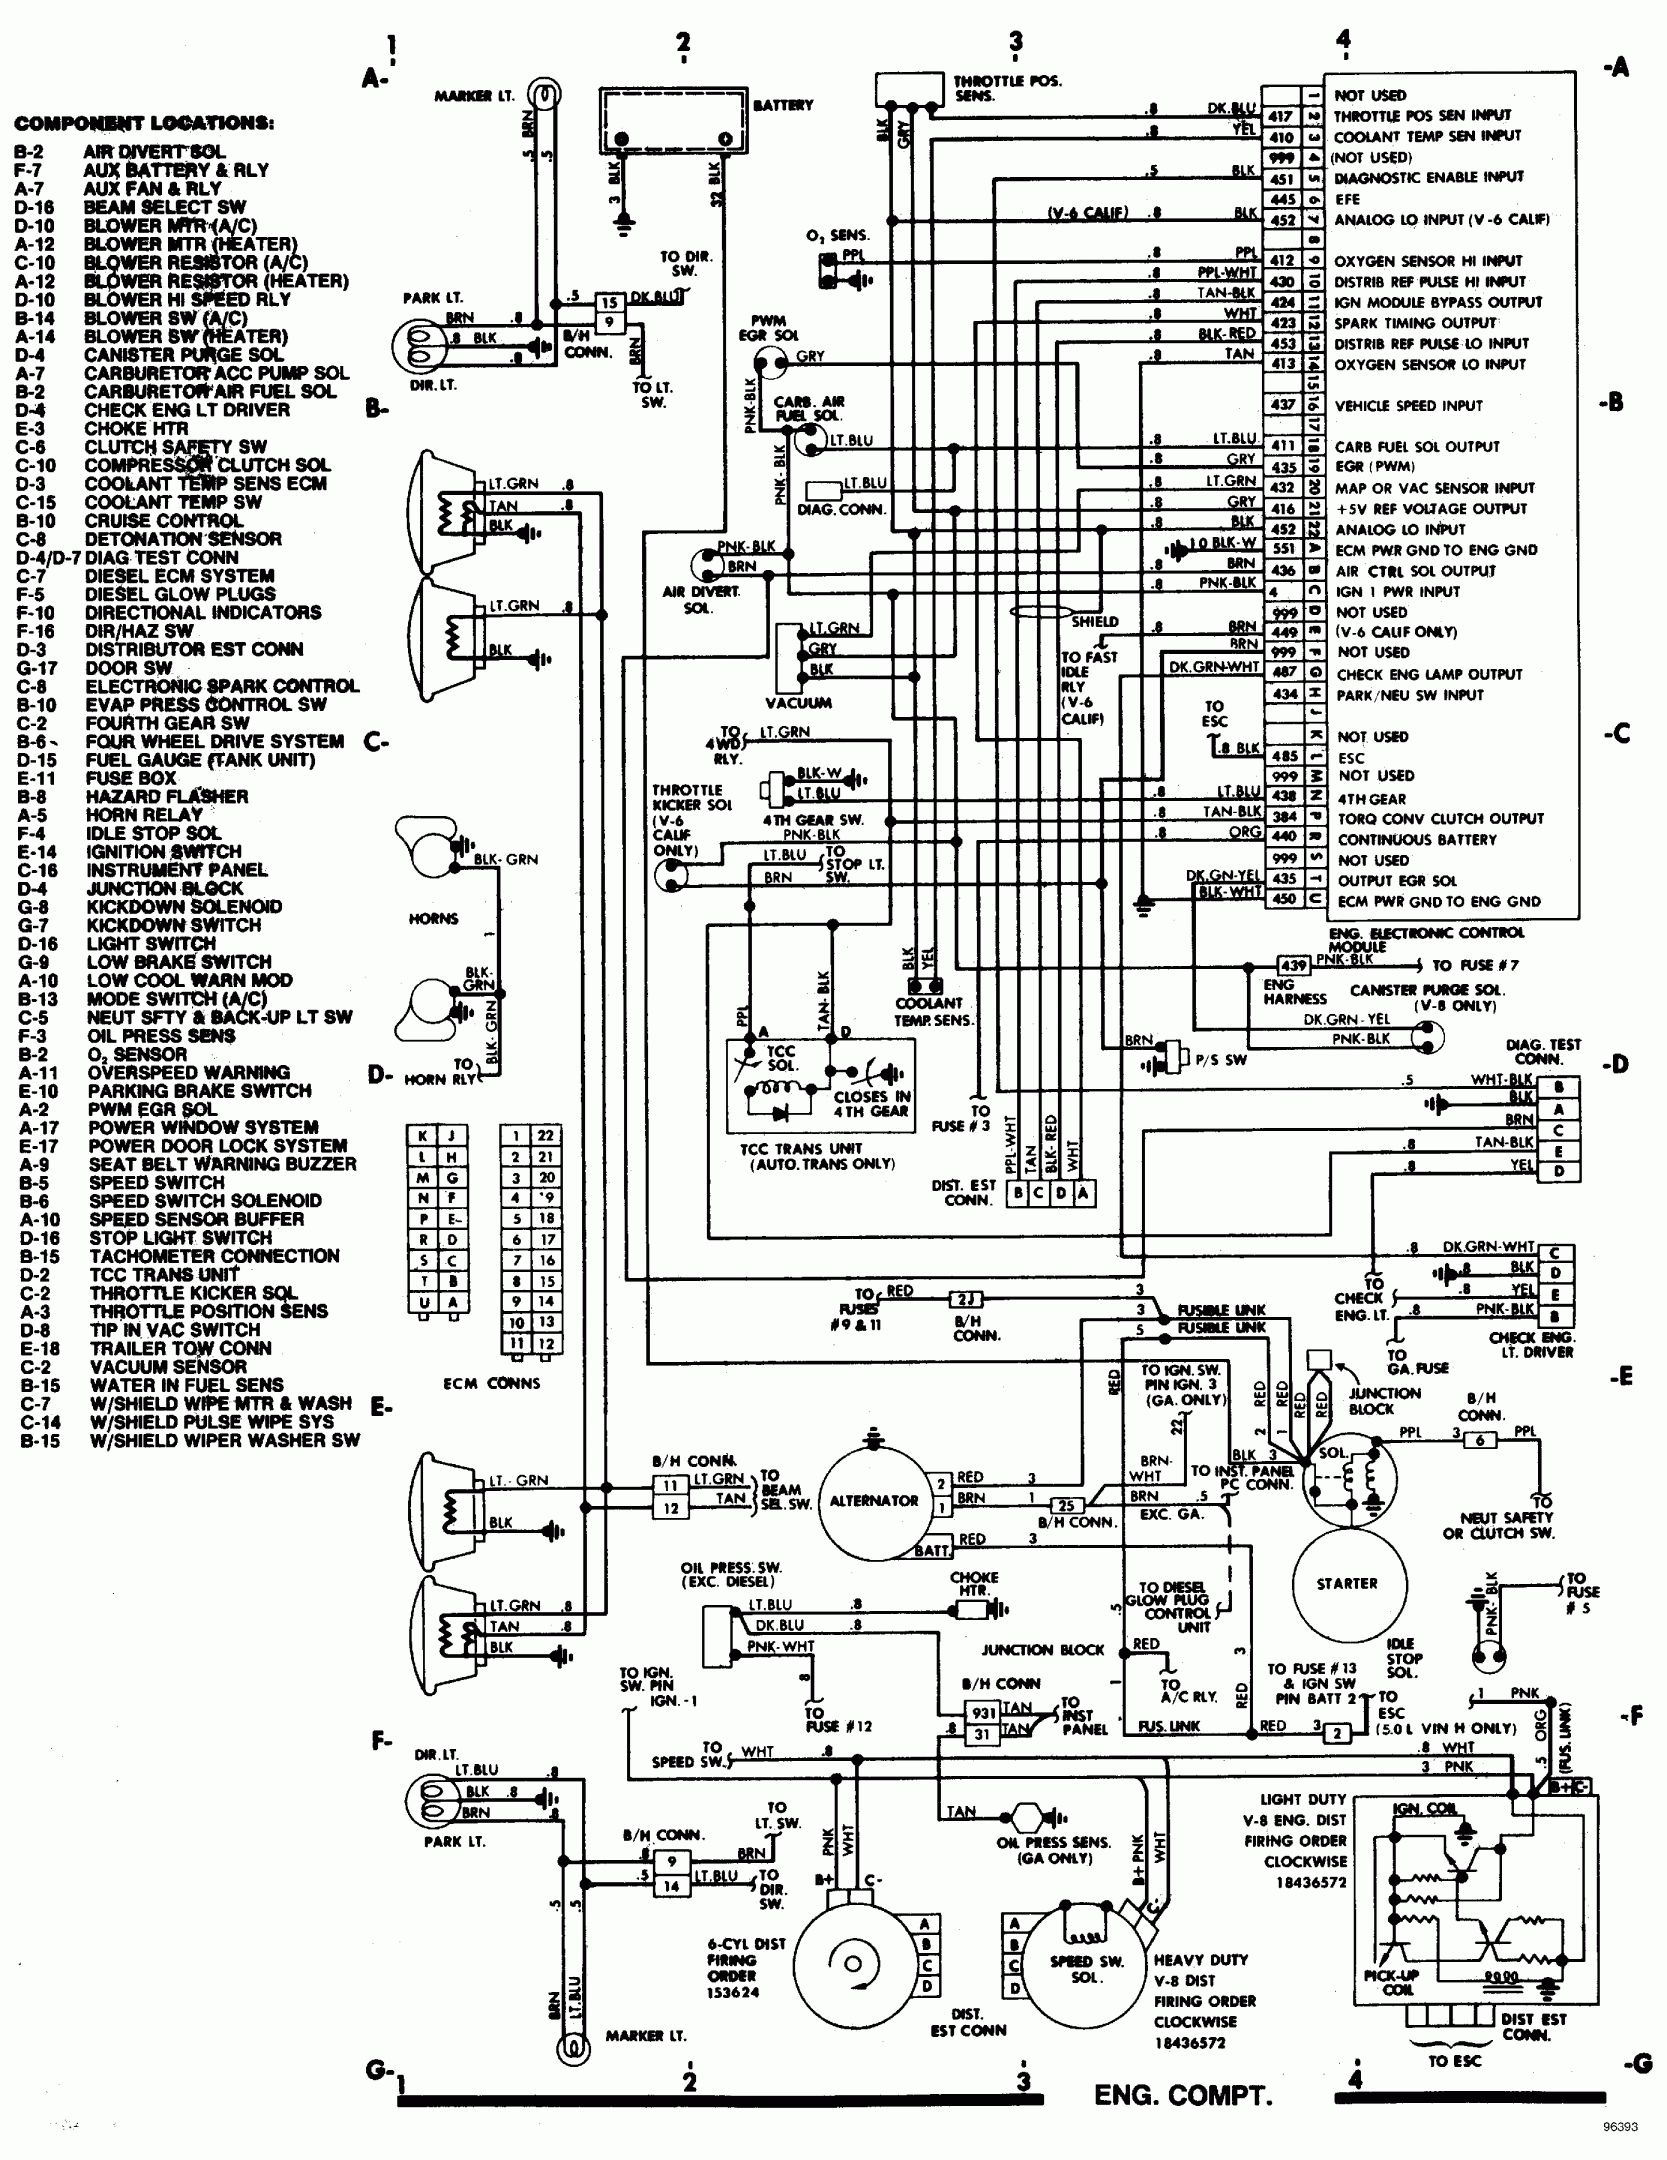 Chevy Truck Electrical Wiring Diagram And Chevy Truck